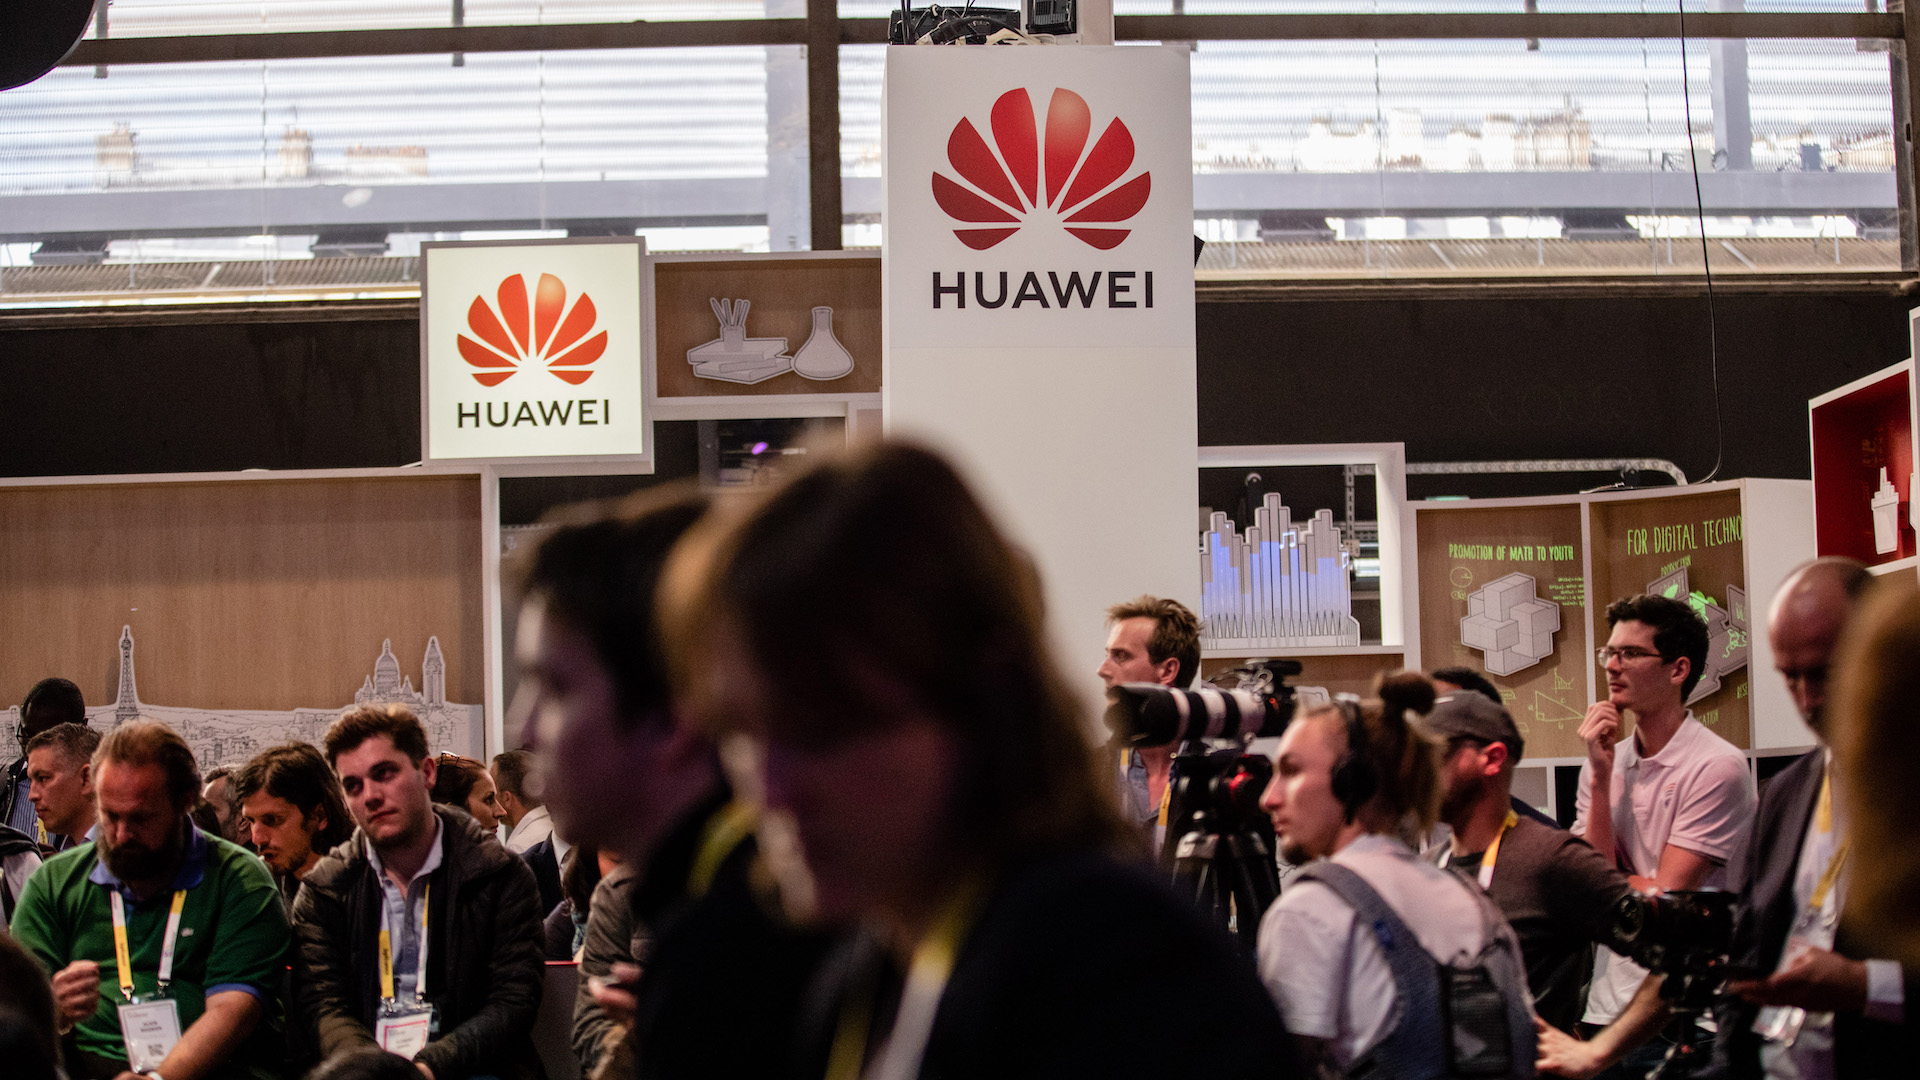 The blacklisting of Huawei might be China's Sputnik moment